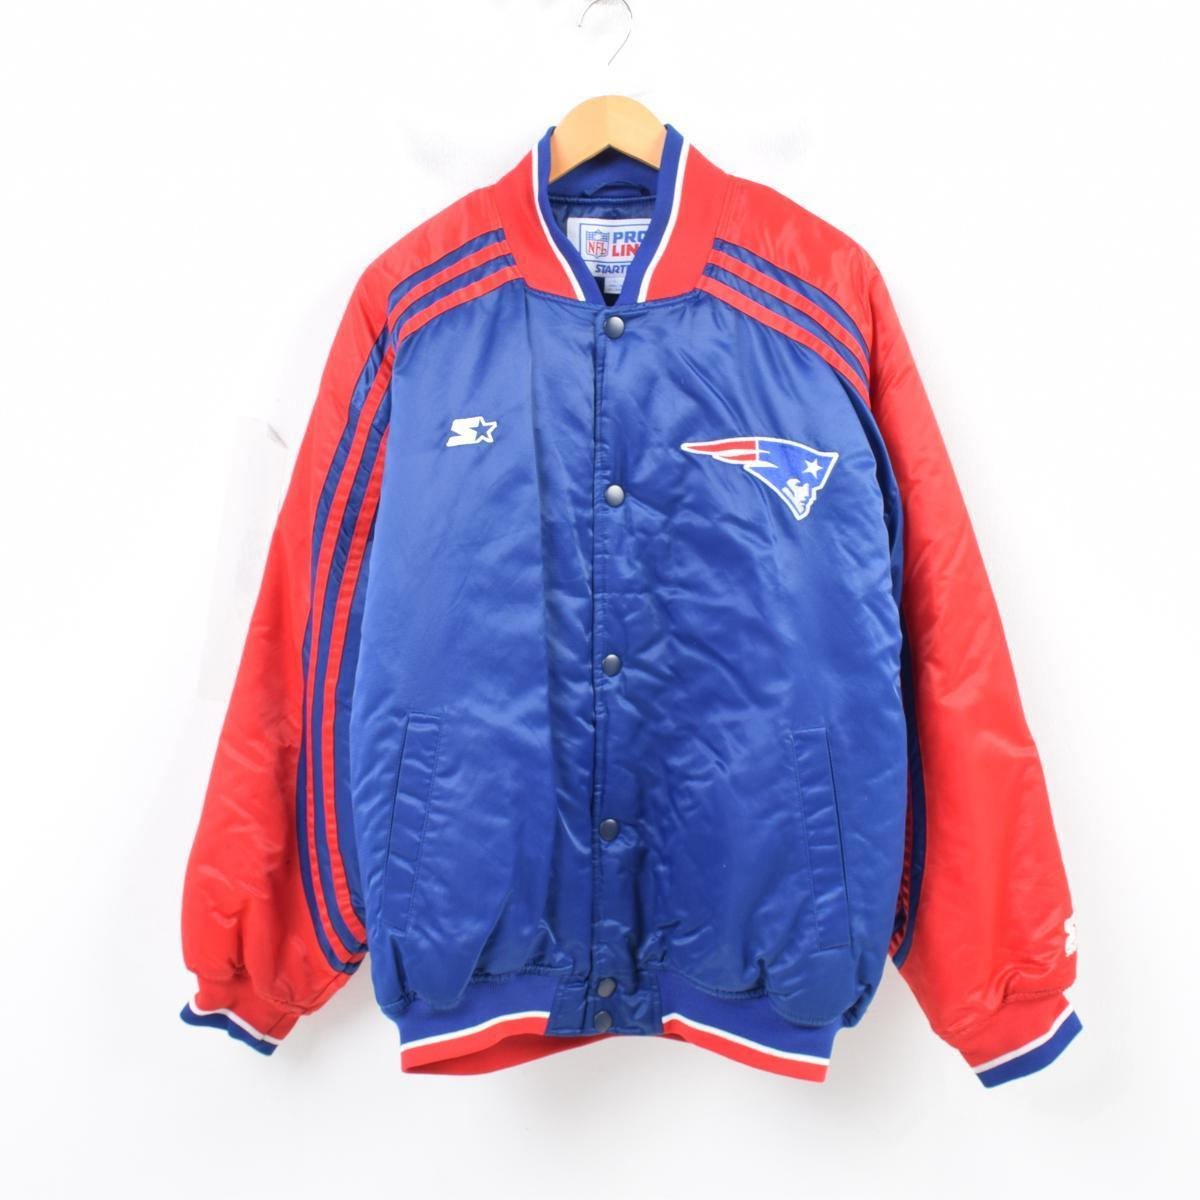 on sale abc94 fea67 Starter Starter NFL NEW ENGLAND PATRIOTS New England Patriots nylon award  jacket Award jacket men XL /wau0192